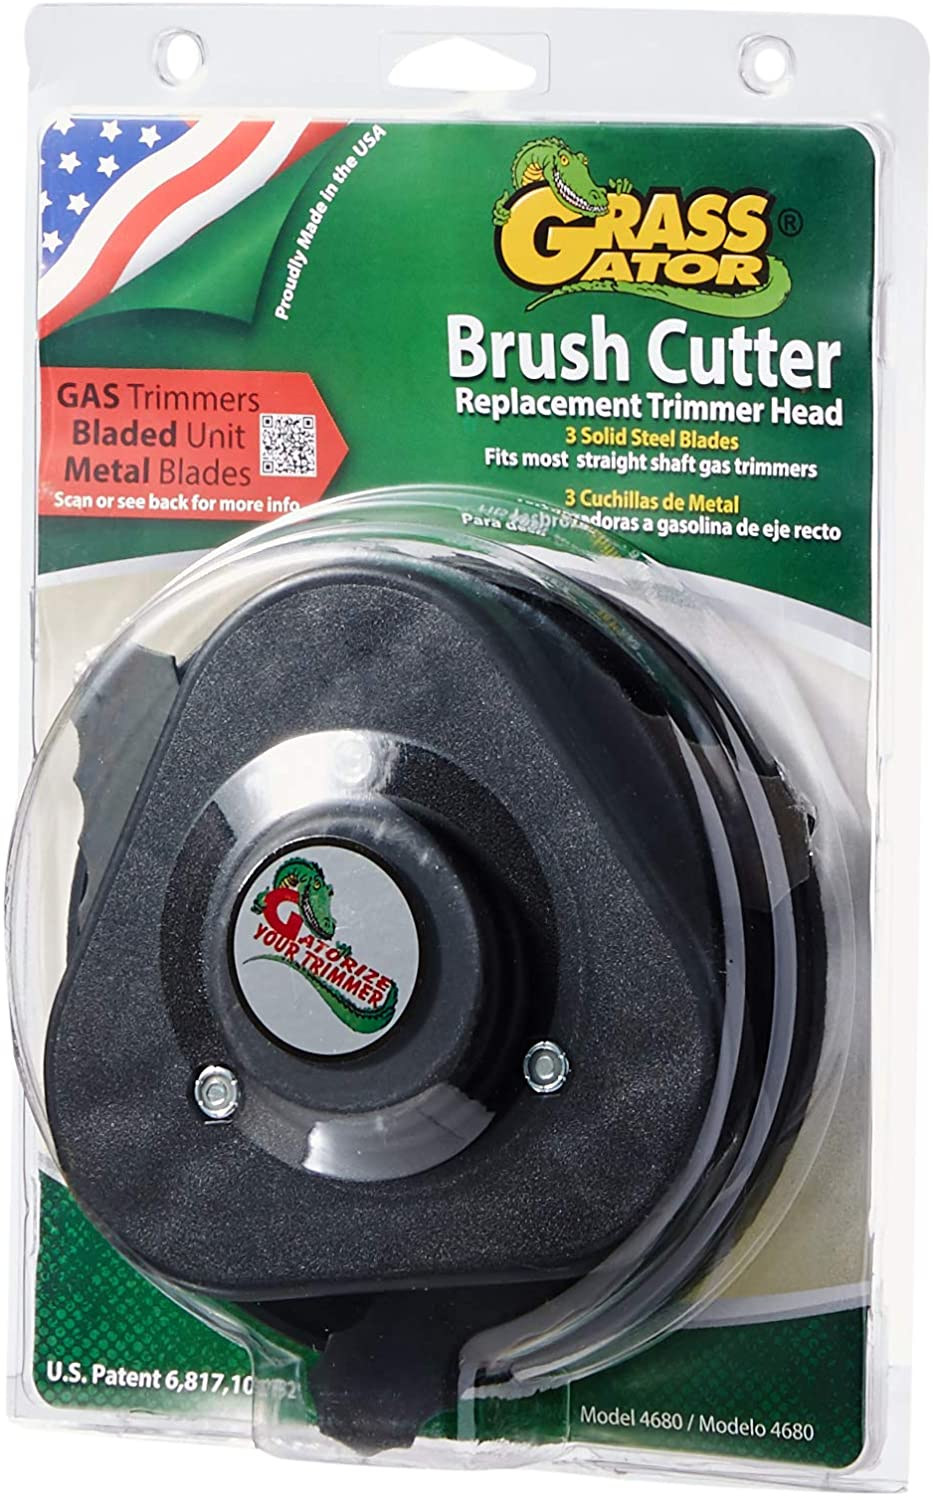 Grass Gator 4680 Brush Cutter Extra Heavy Duty Replacement Trimmer Head